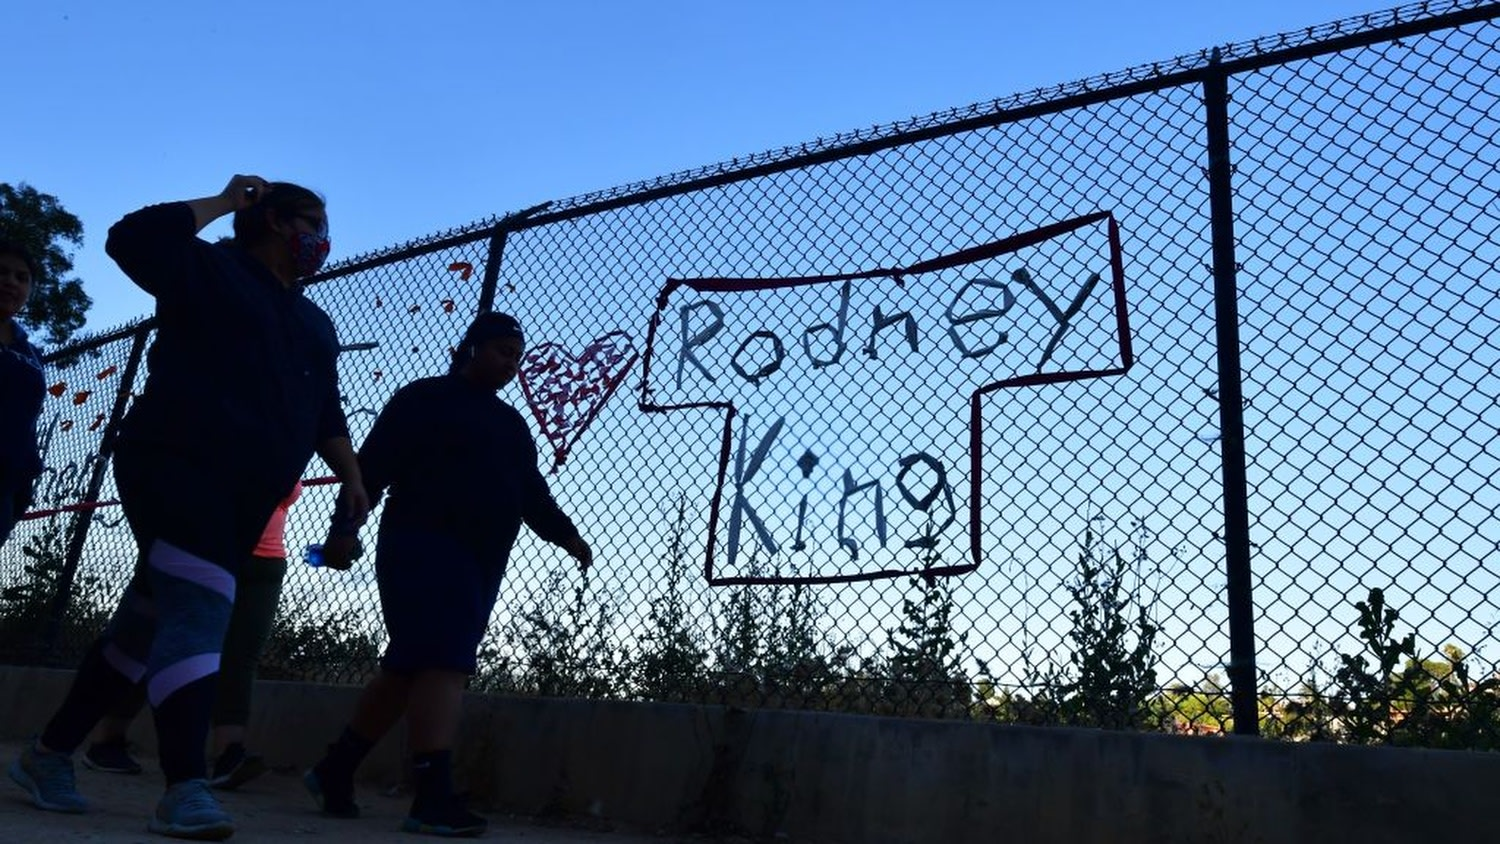 George Holliday, Who Filmed Rodney King's Beating, Passes Away From COVID-19 Complications